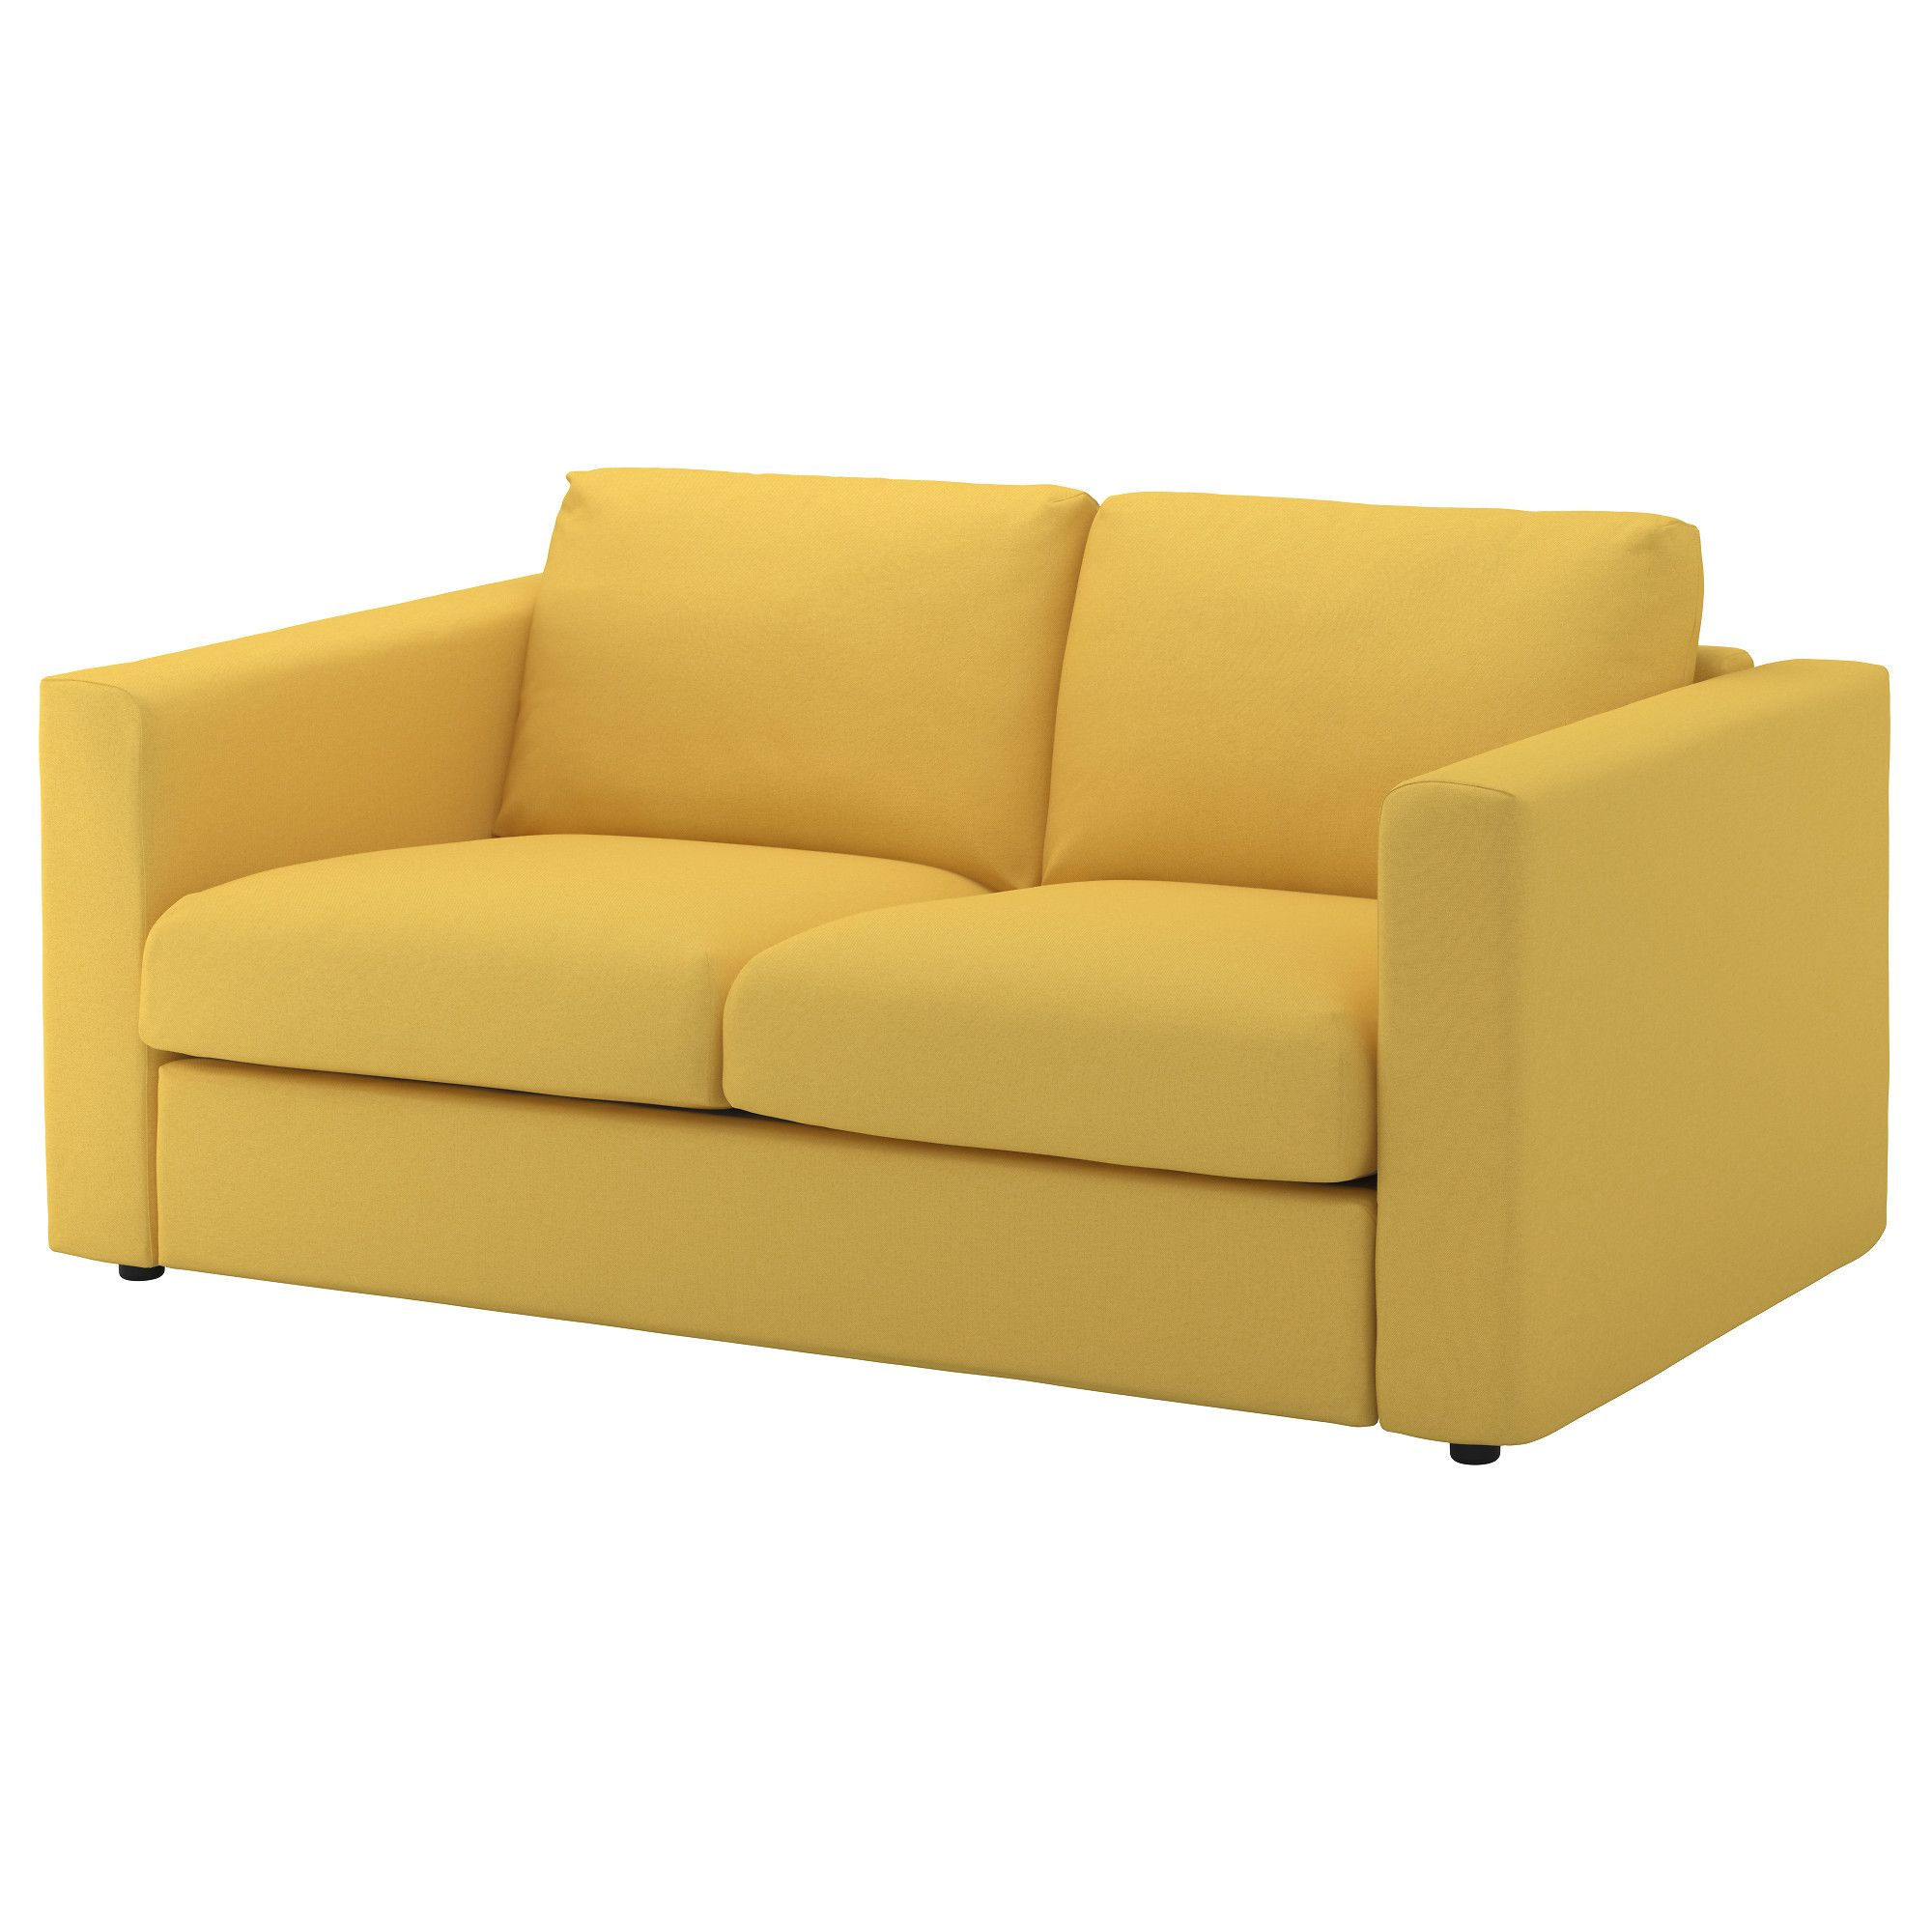 Furniture Home Furnishings Find Your Inspiration Leather Sofa And Loveseat Love Seat Cosy Sofa